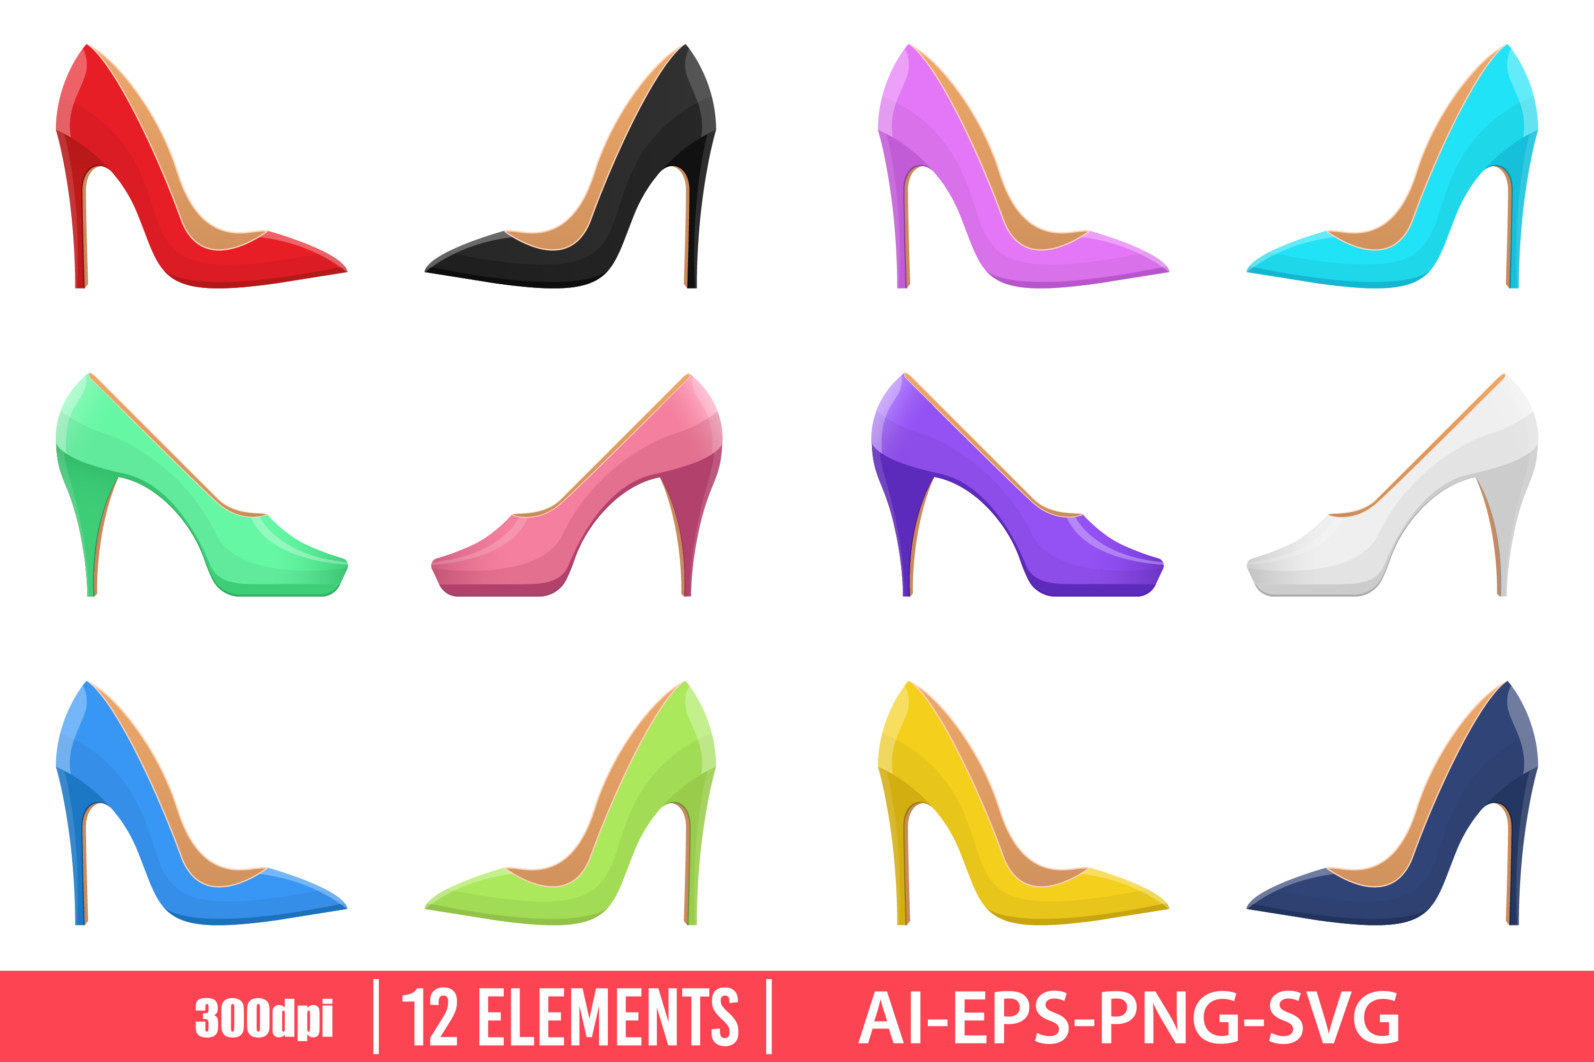 High heel shoes clipart vector design illustration. High heel shoes set. Vector Clipart Print - HIGH HEELS SHOES scaled -